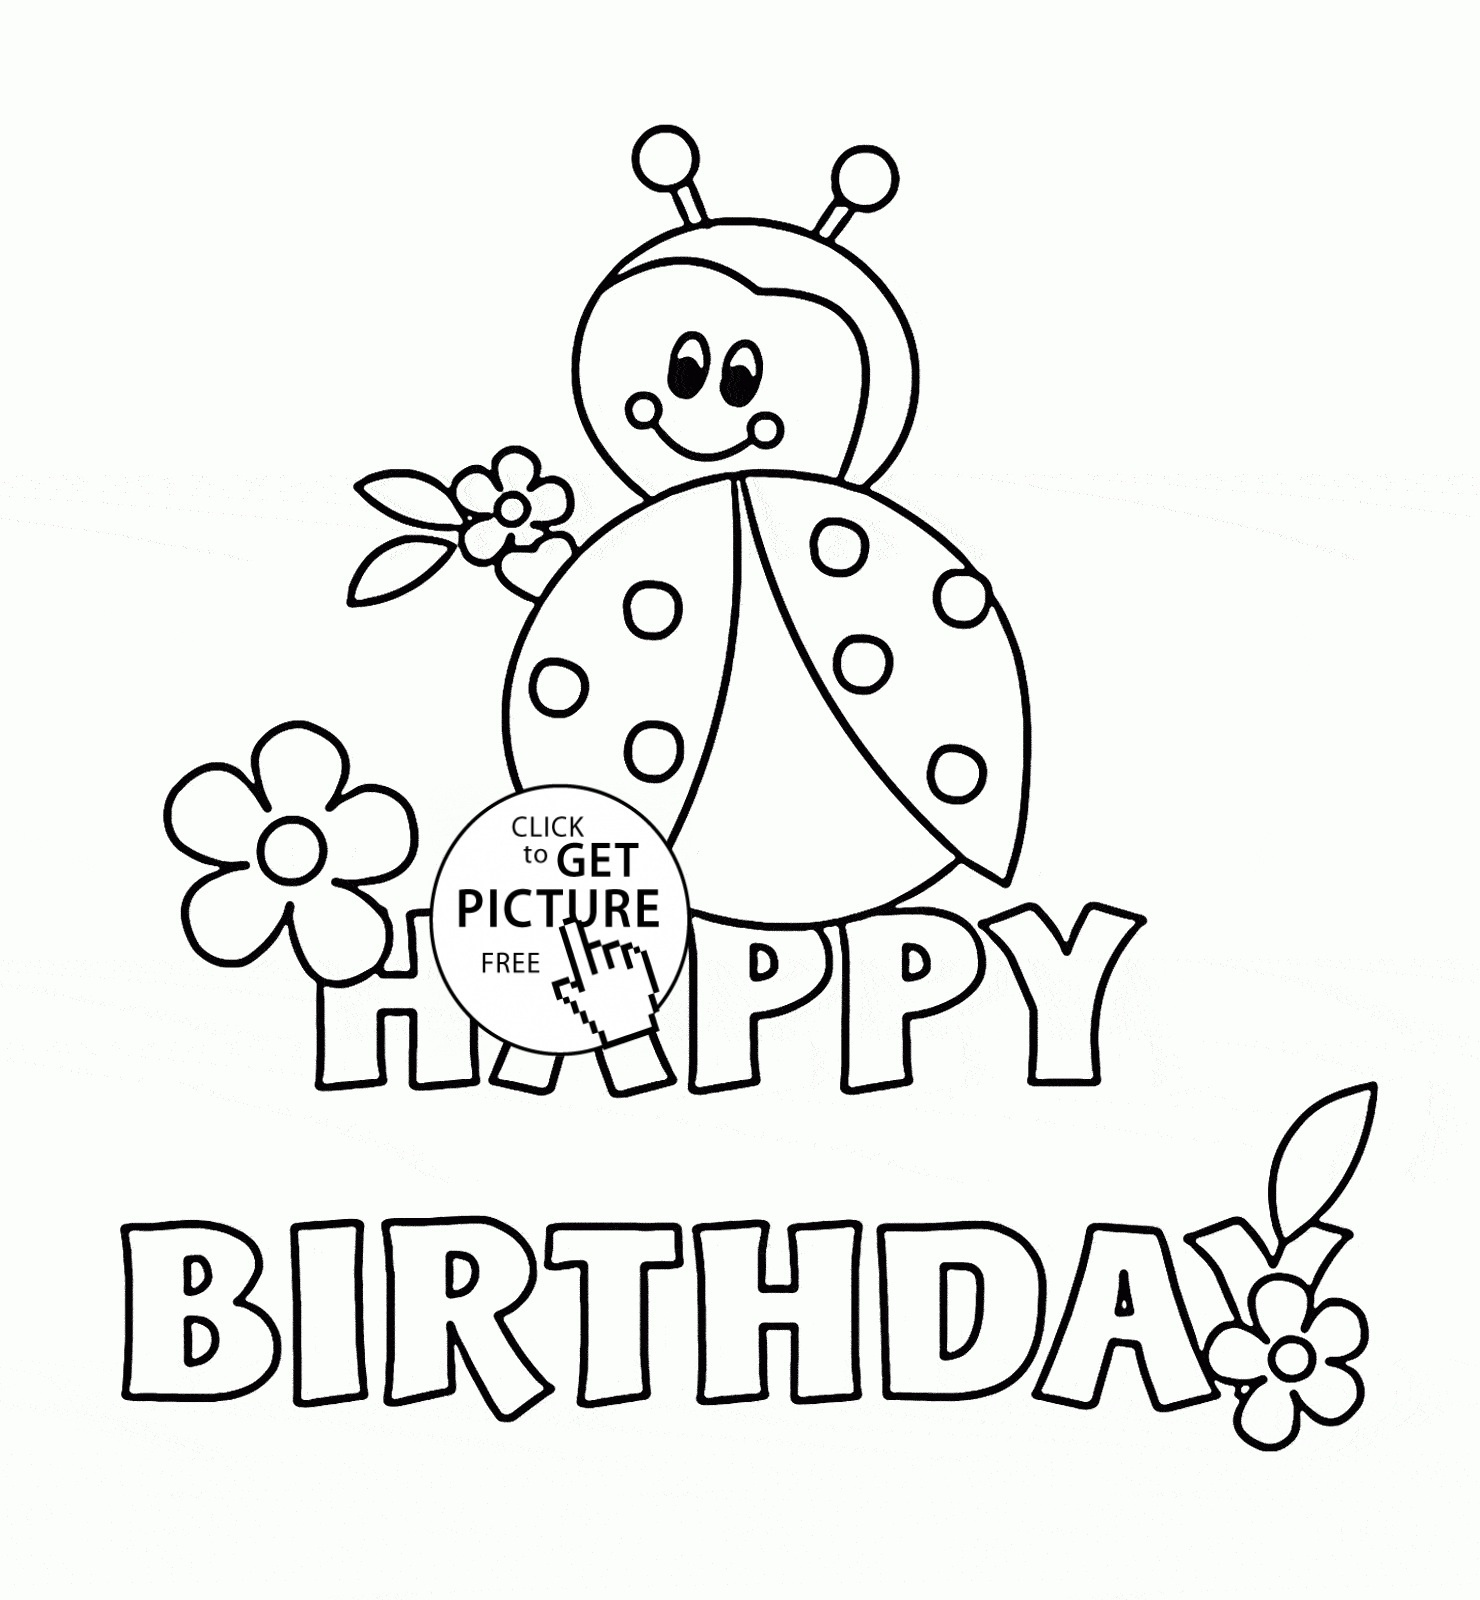 Printable Birthday Cards To Color For Friends | Chart And Printable - Free Printable Birthday Cards To Color